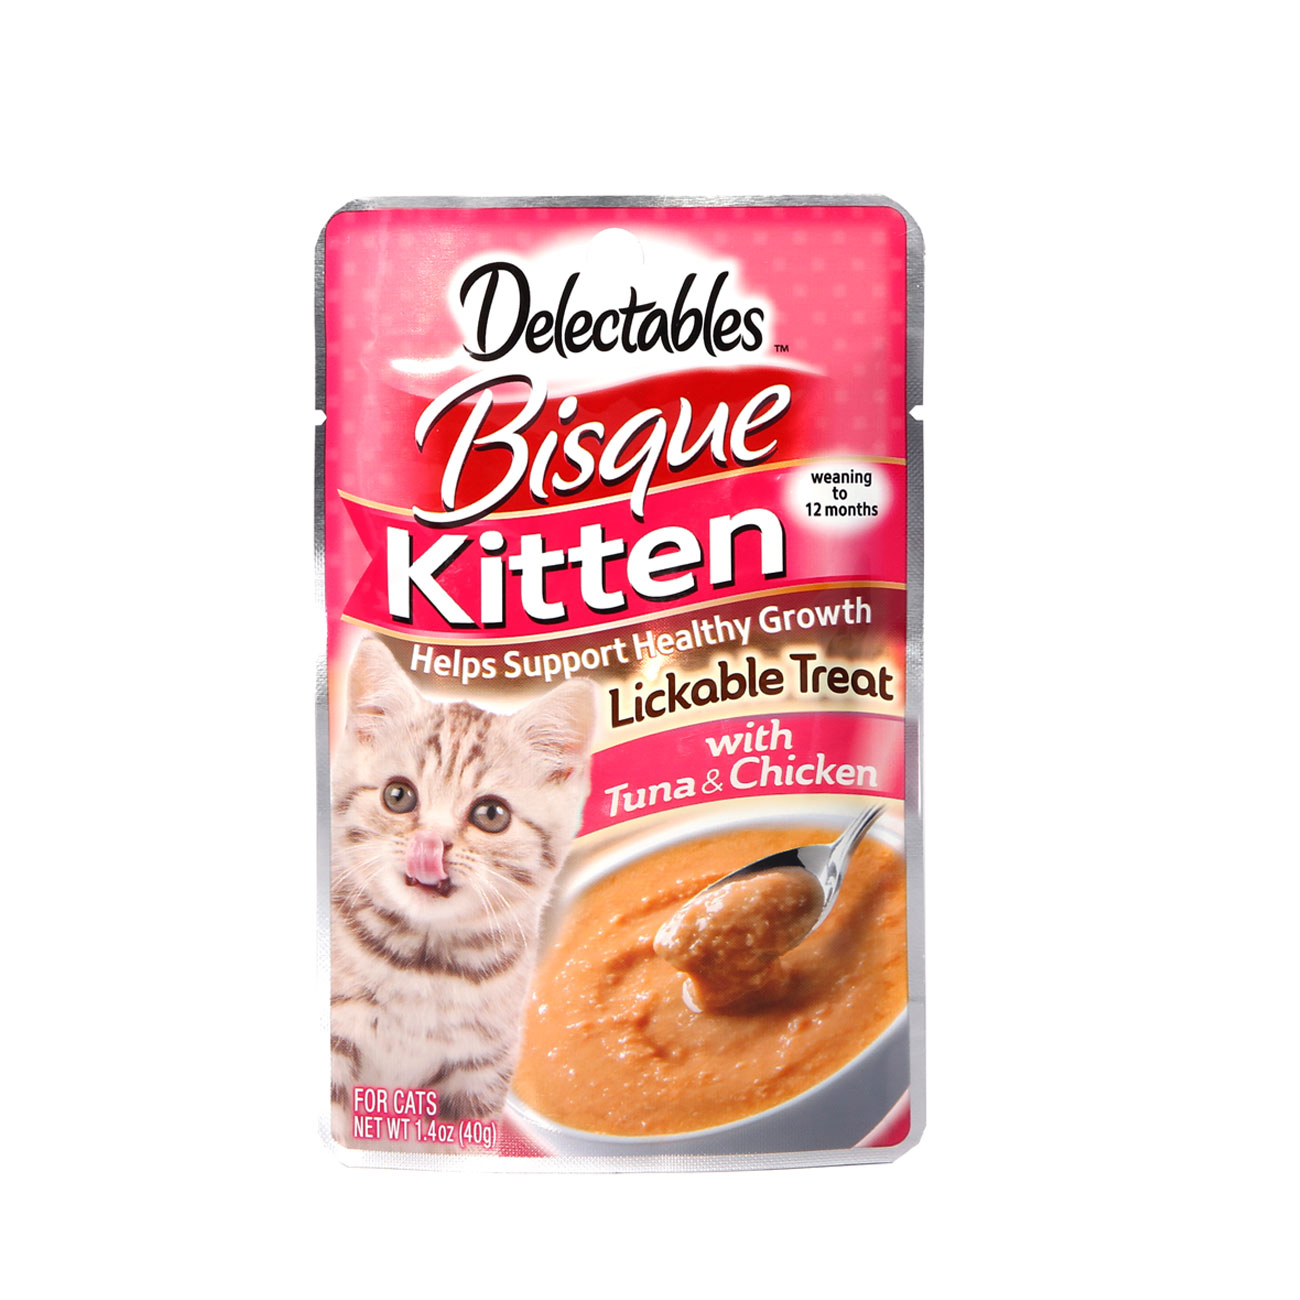 Delectables lickable treat bisque tuna and chicken for kittens. Front of package. Hartz delectables lickable treats are the first wet cat treat.